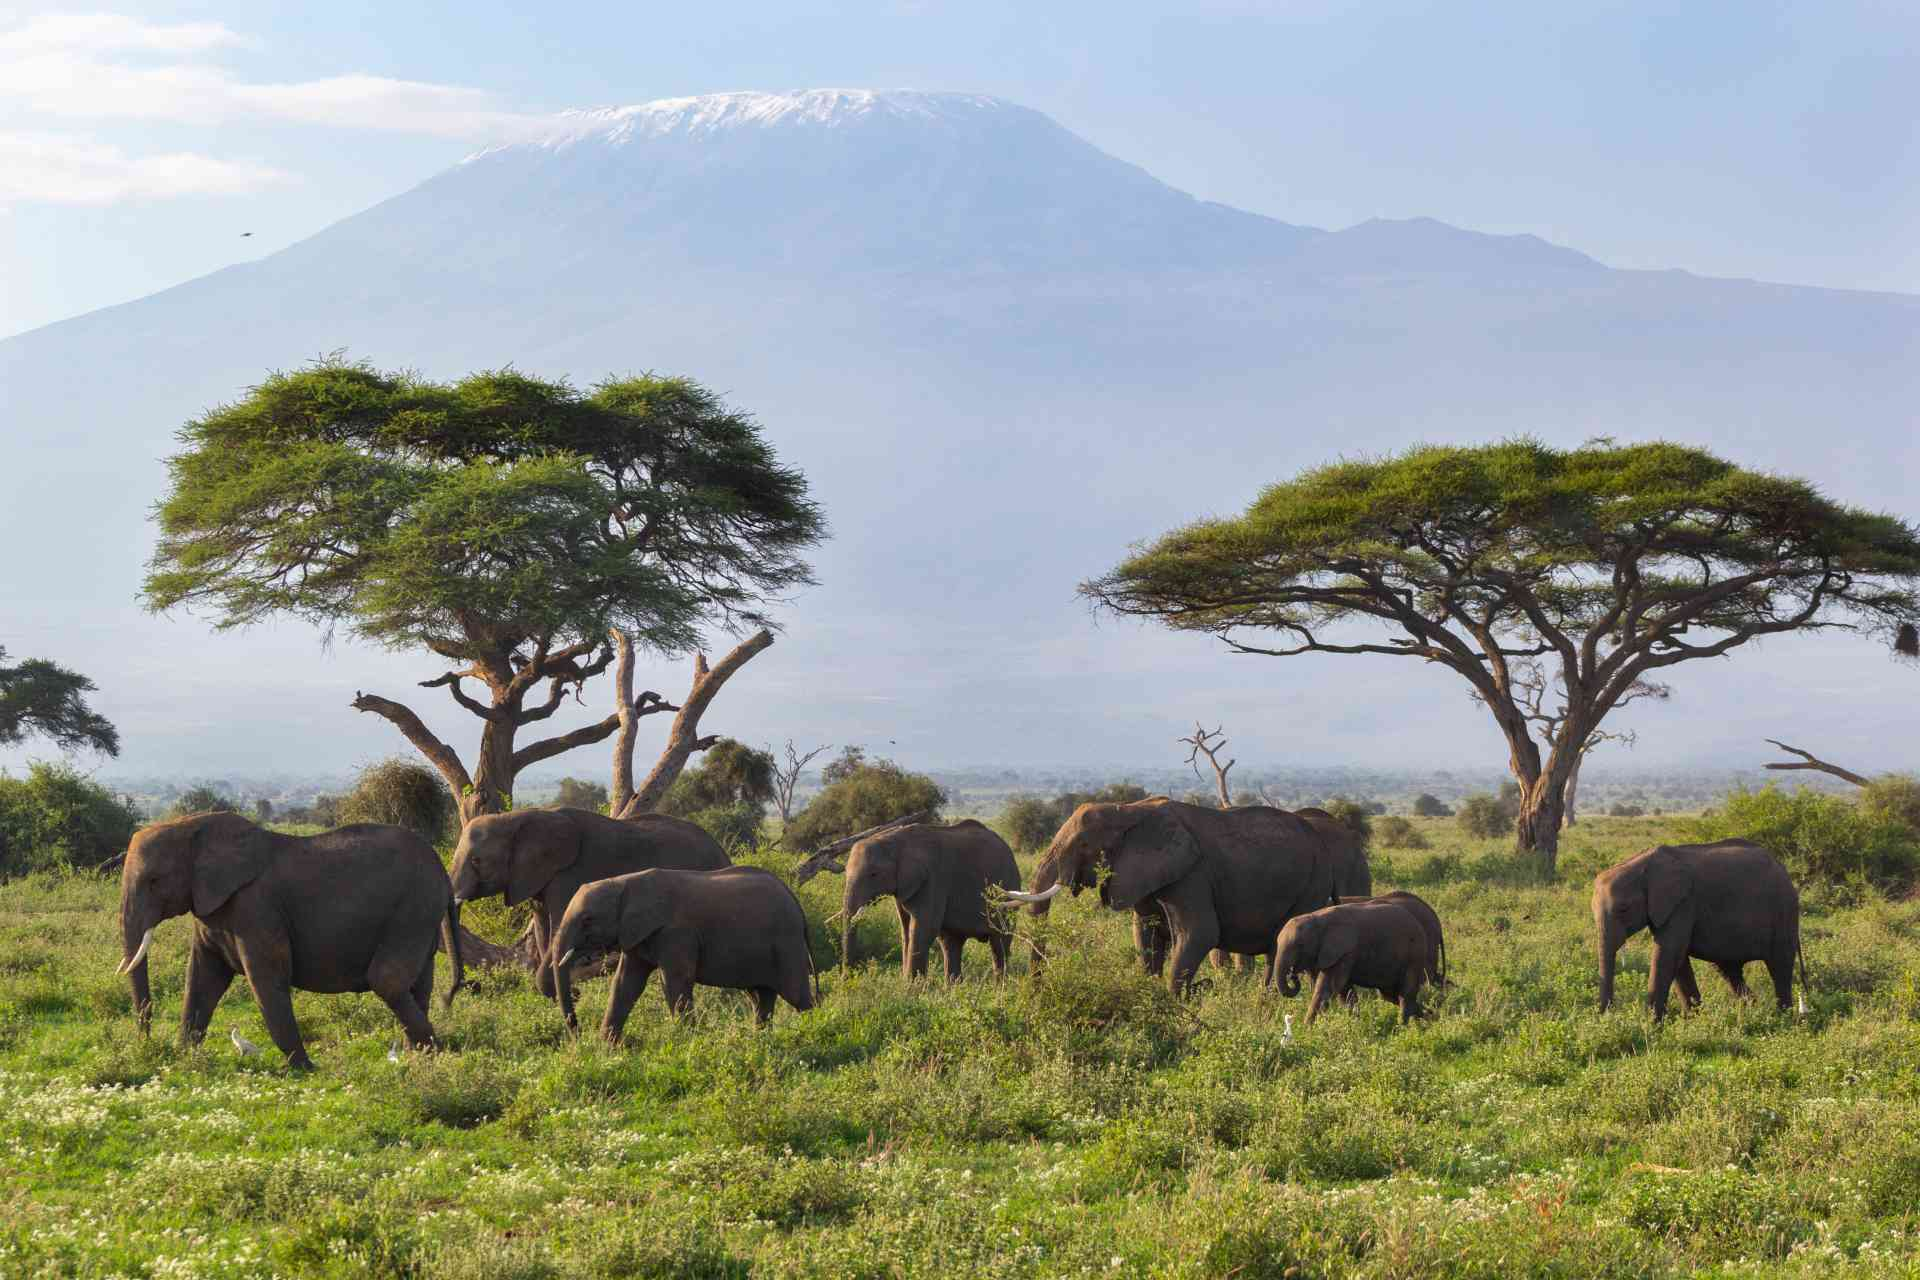 Amboseli National Park, Kenya by Chloe Marshman